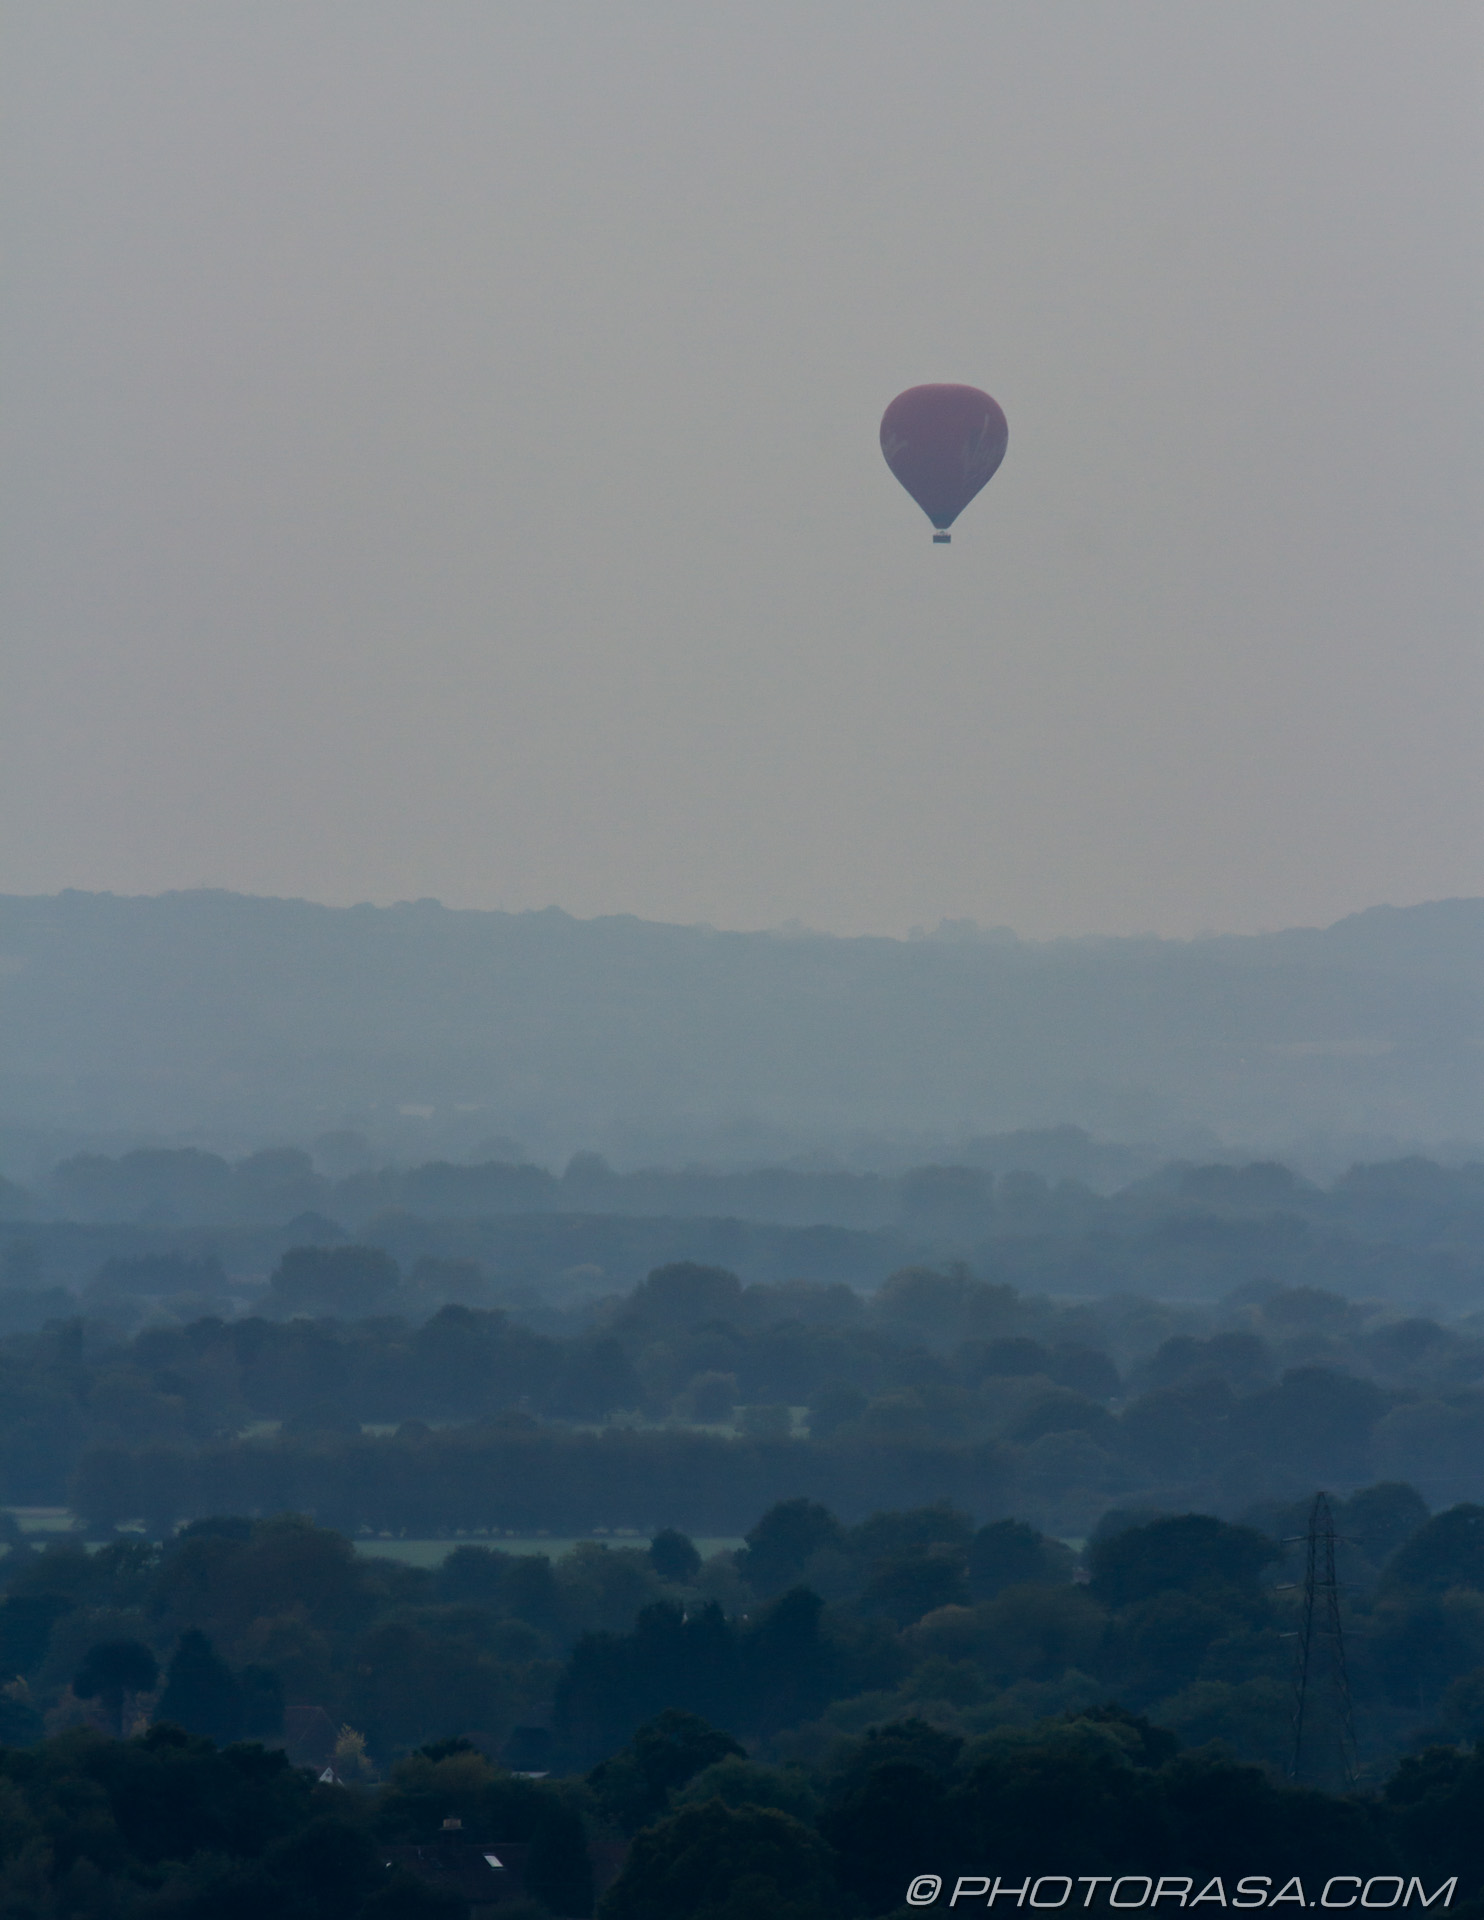 http://photorasa.com/balloons-evening-sky/hot-air-ballon-of-misty-countryside/